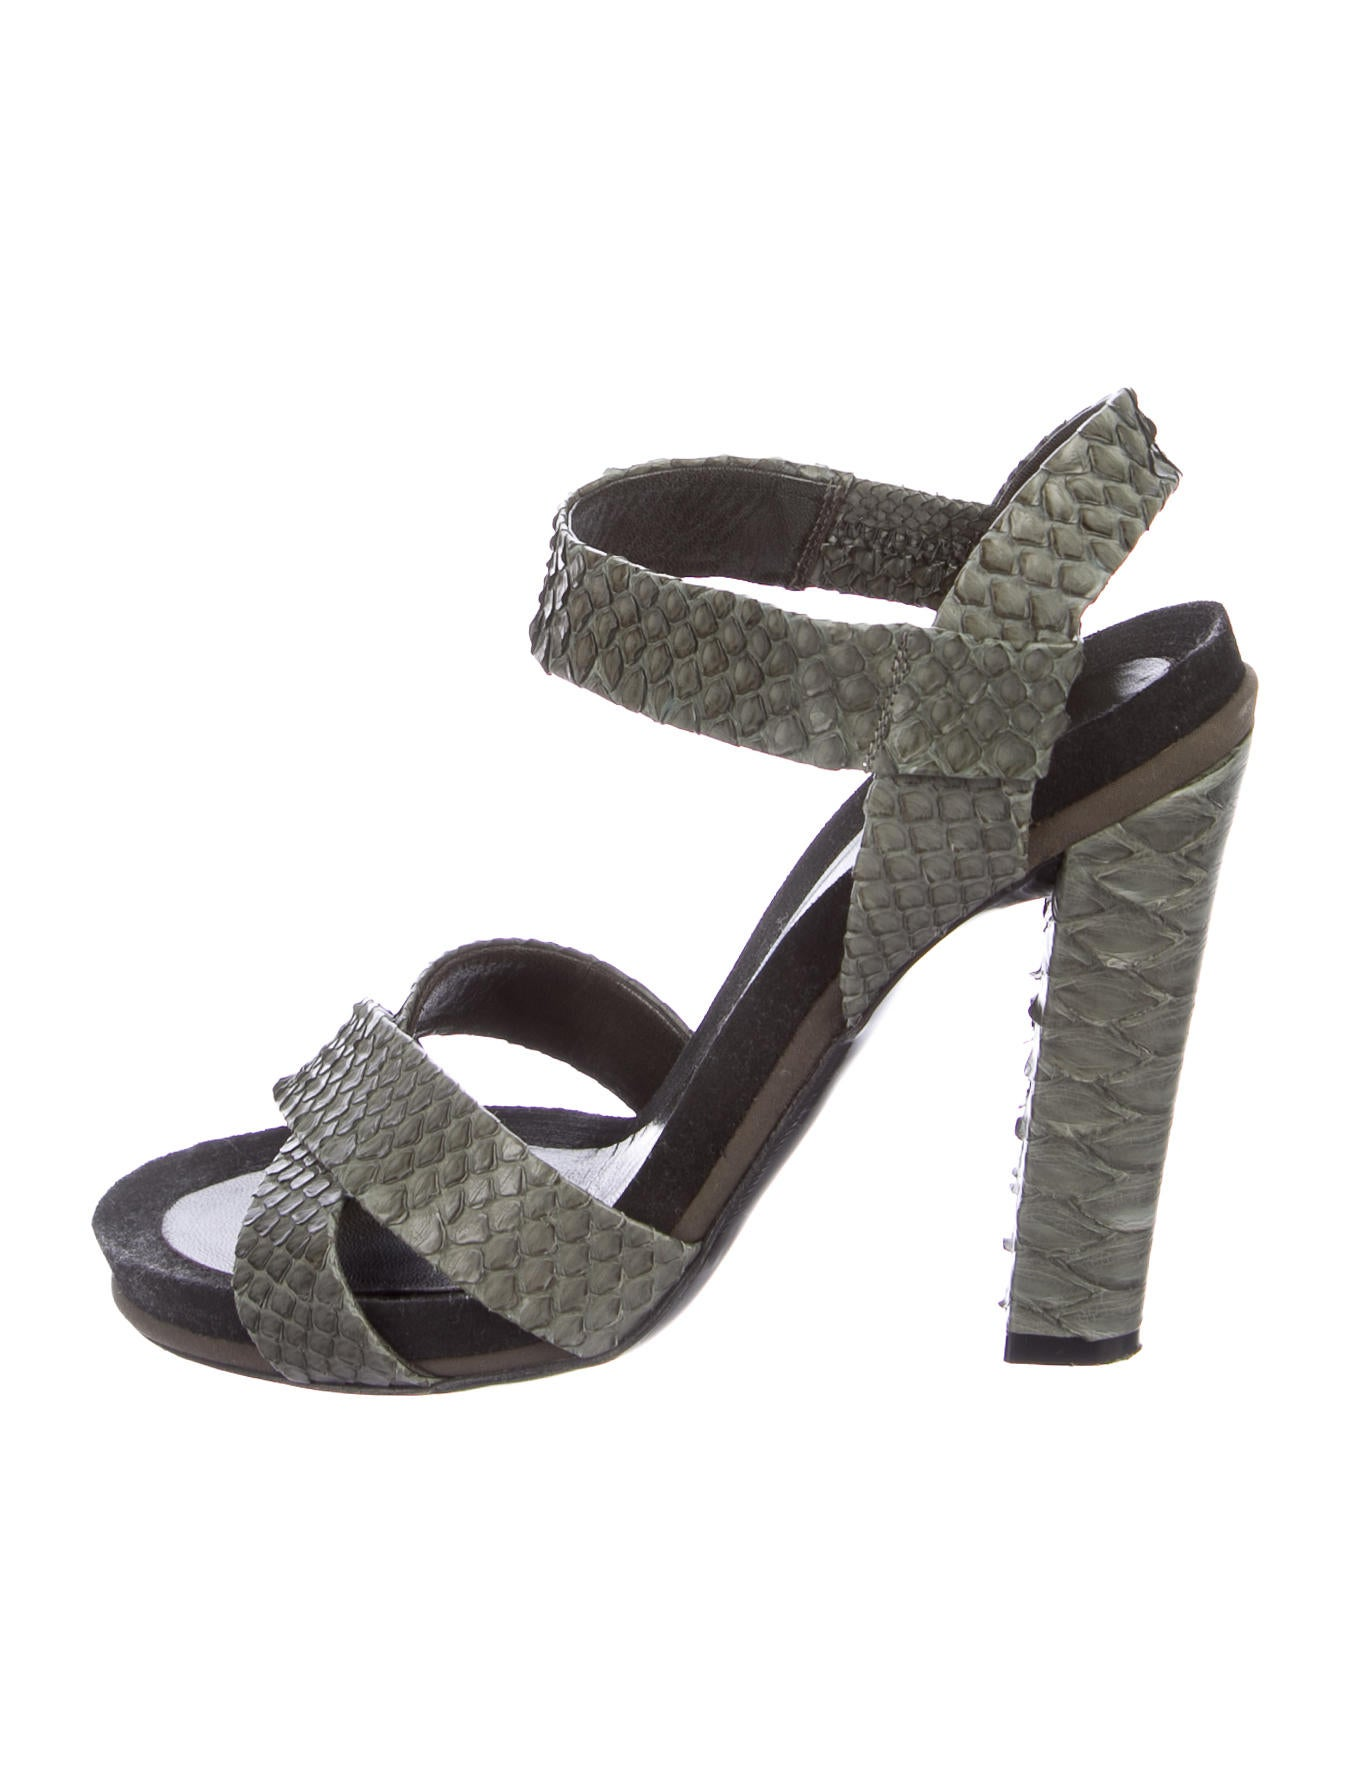 sast Chloé Python Crossover Sandals sale amazing price cheap sale new styles low price fee shipping shop for cheap price Xws2bxeZ